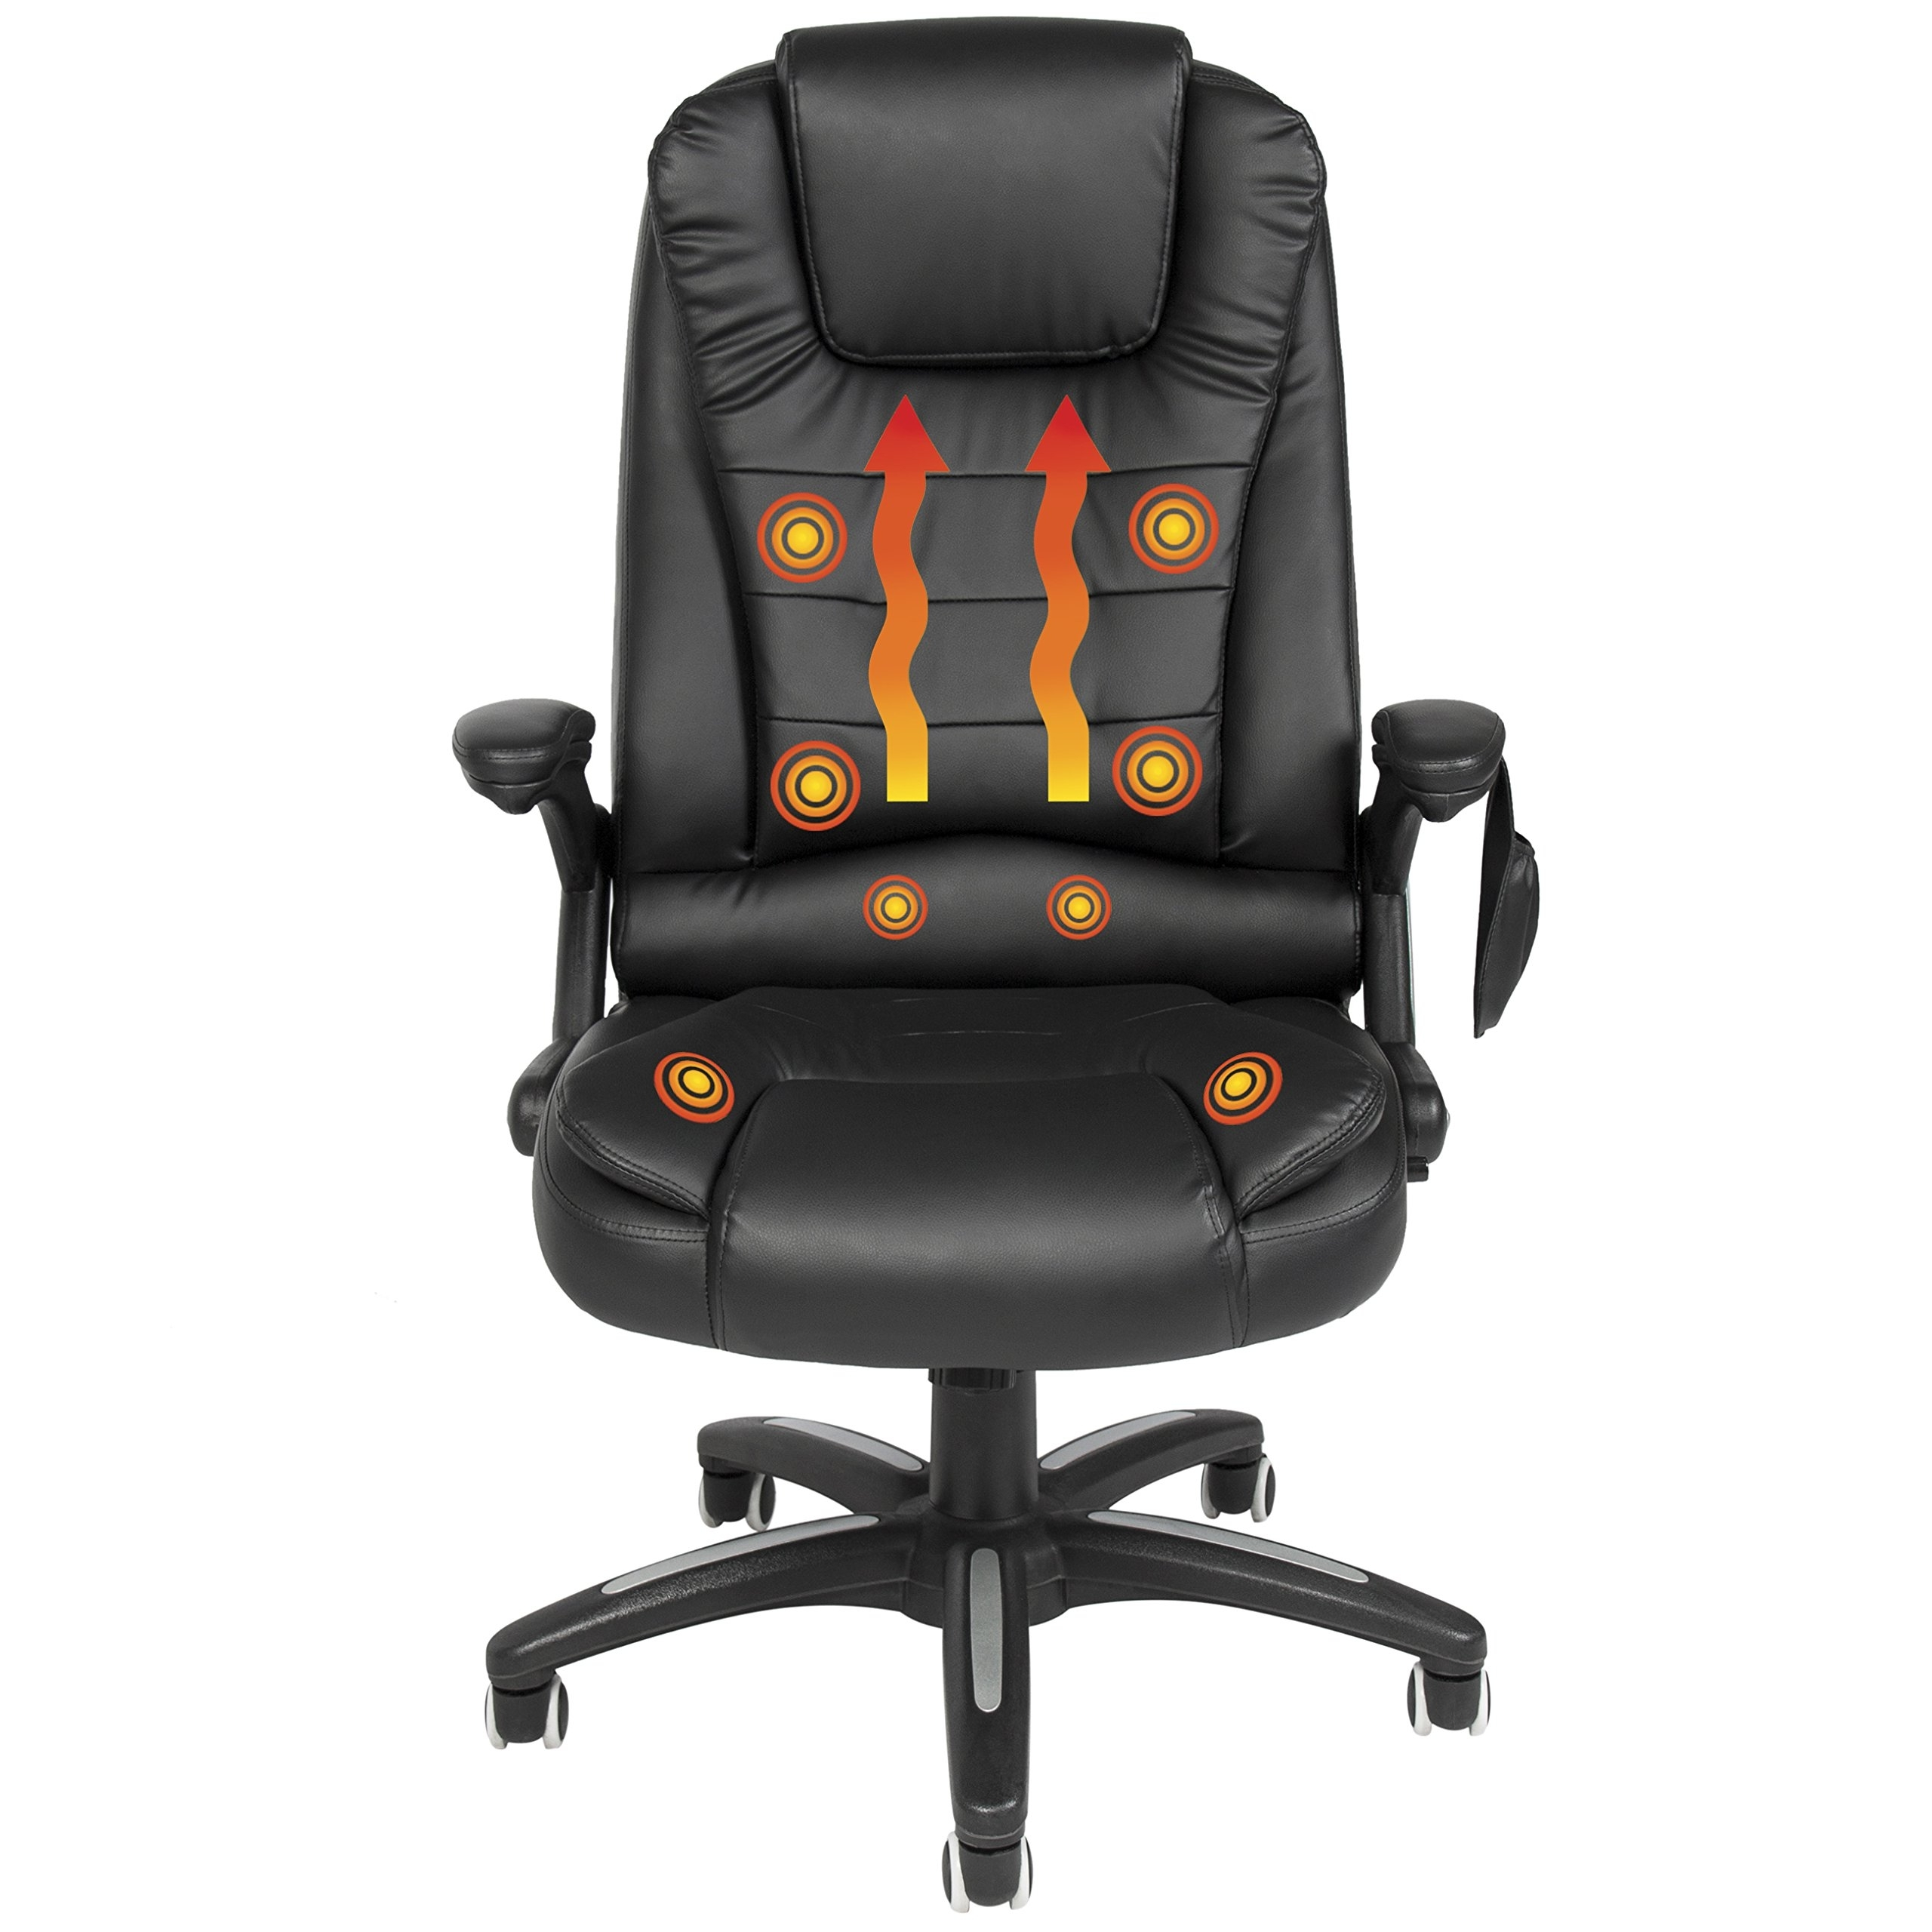 Cheap Vibrating Chair, Find Vibrating Chair Deals On Line At Inside Popular Leather Executive Office Massage Chairs (View 6 of 20)